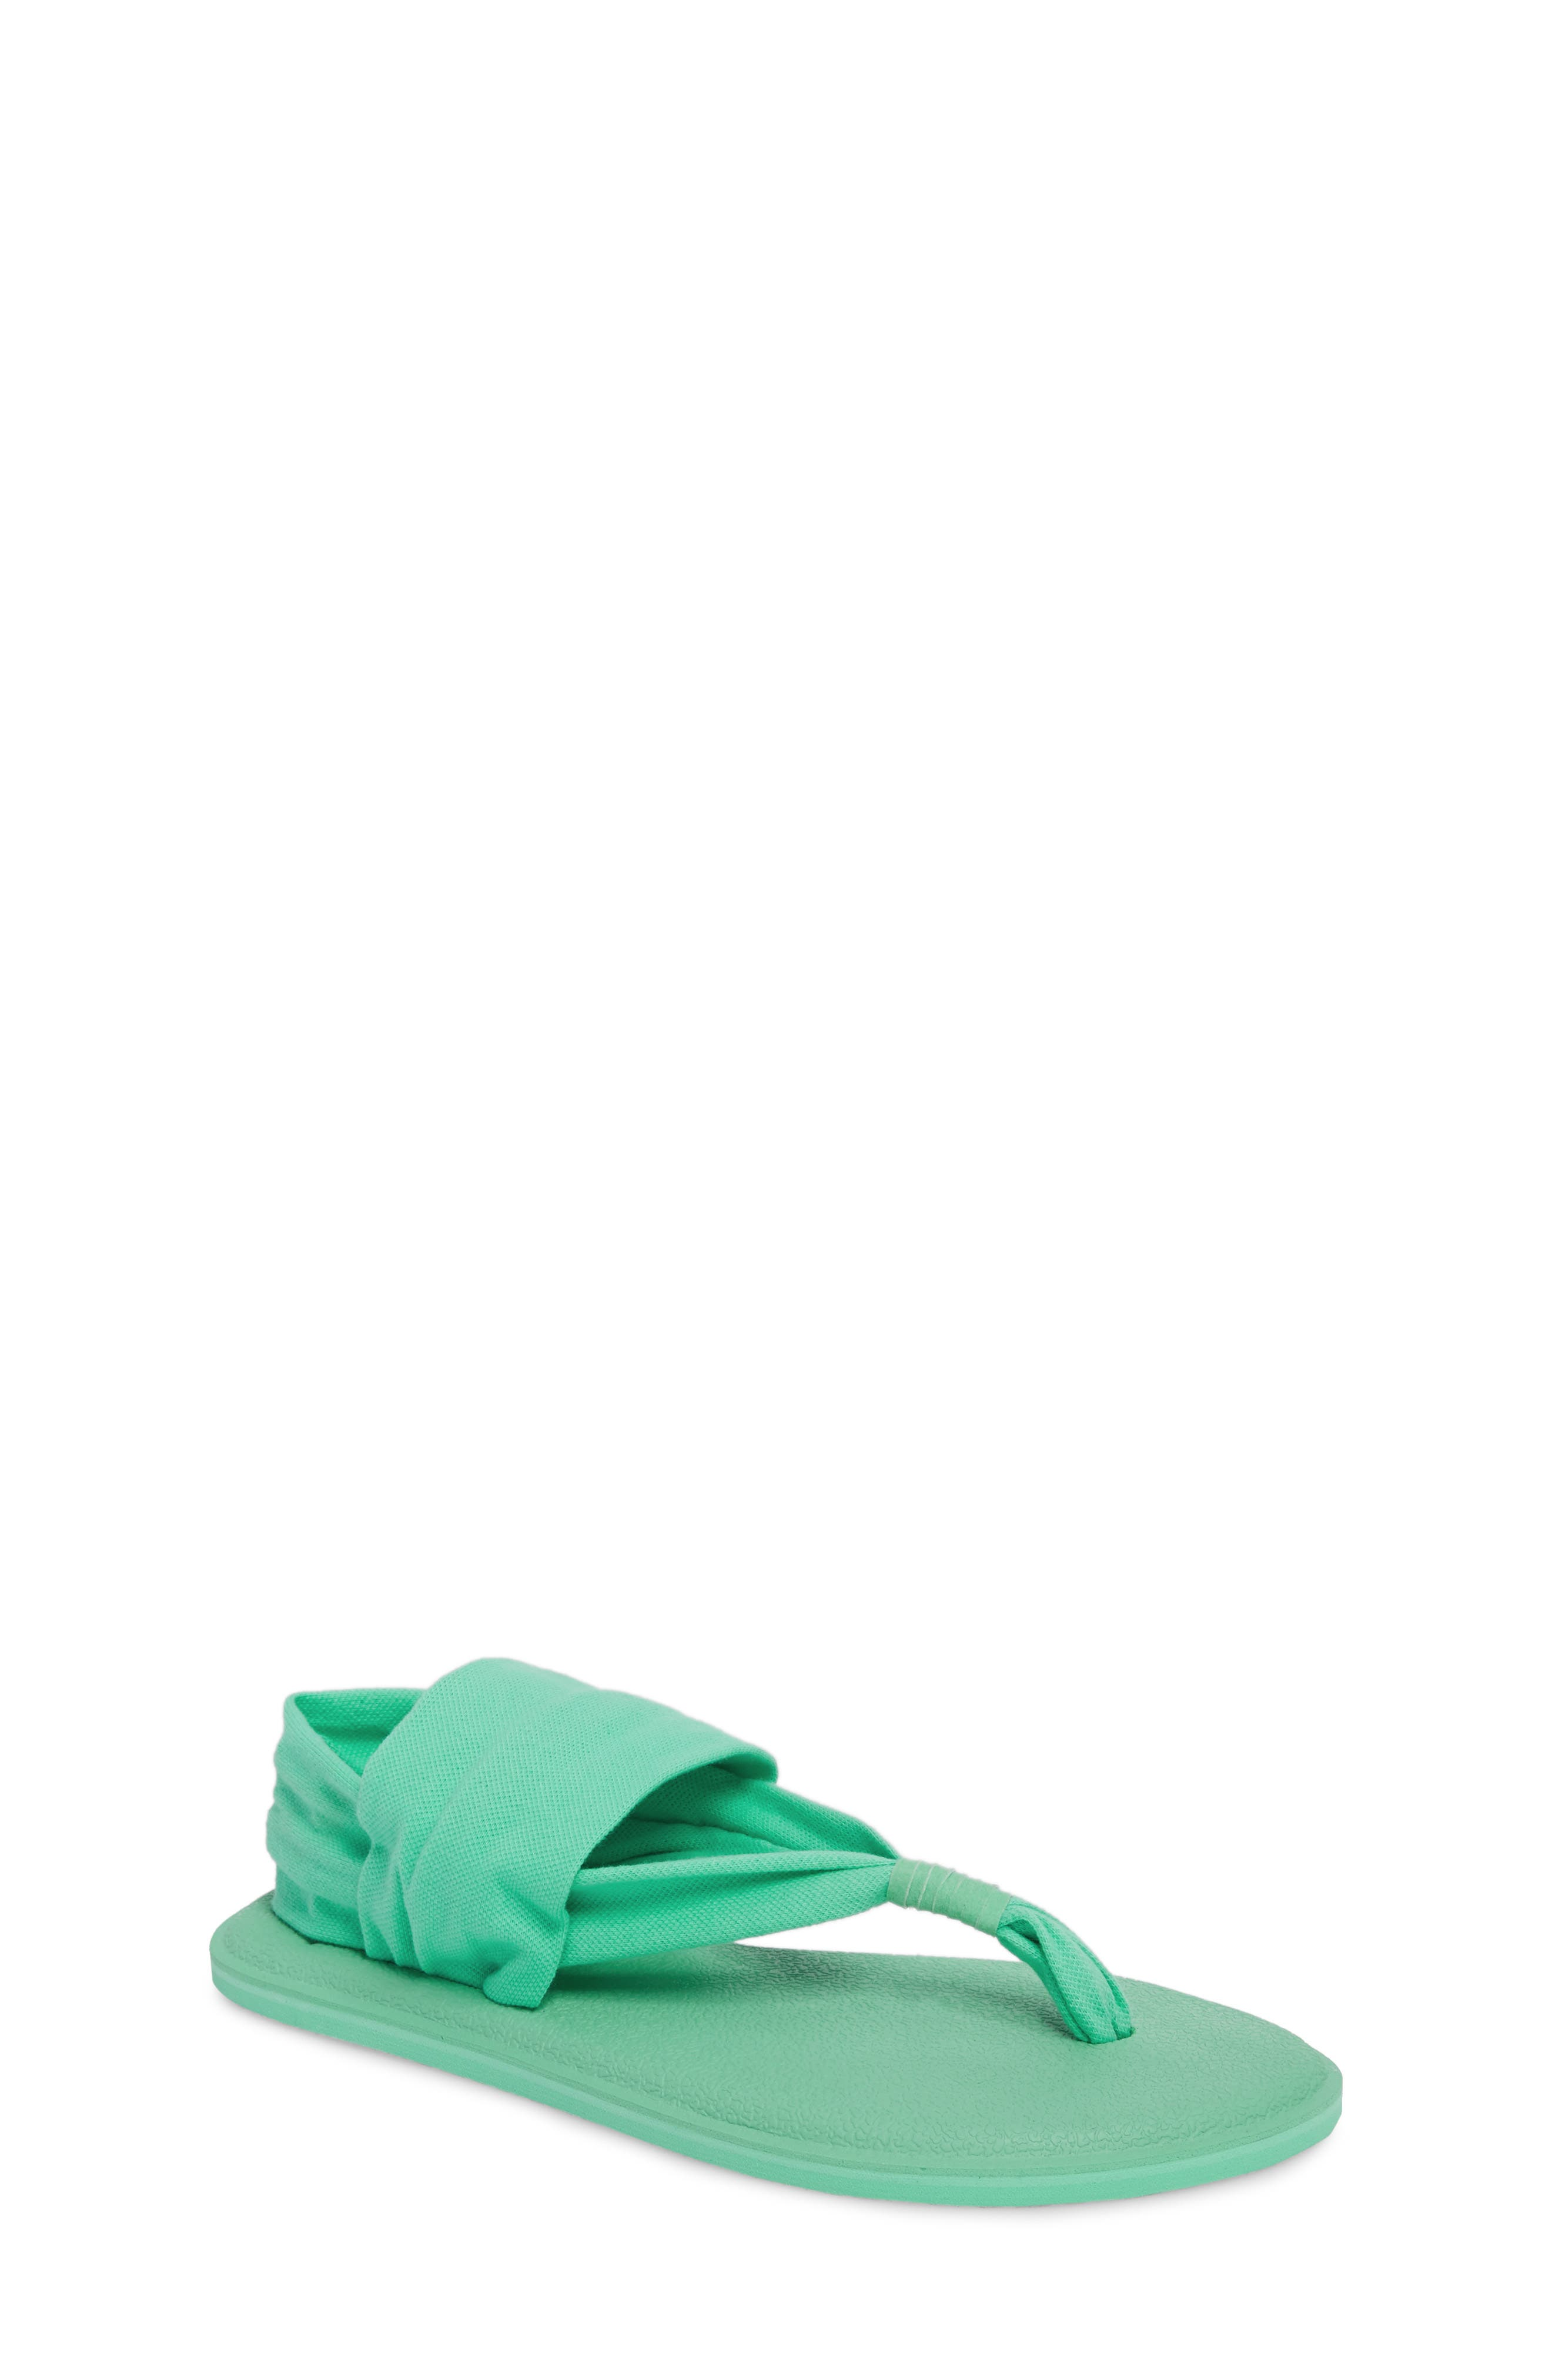 'Yoga Sling Burst' Sandal,                             Main thumbnail 1, color,                             305